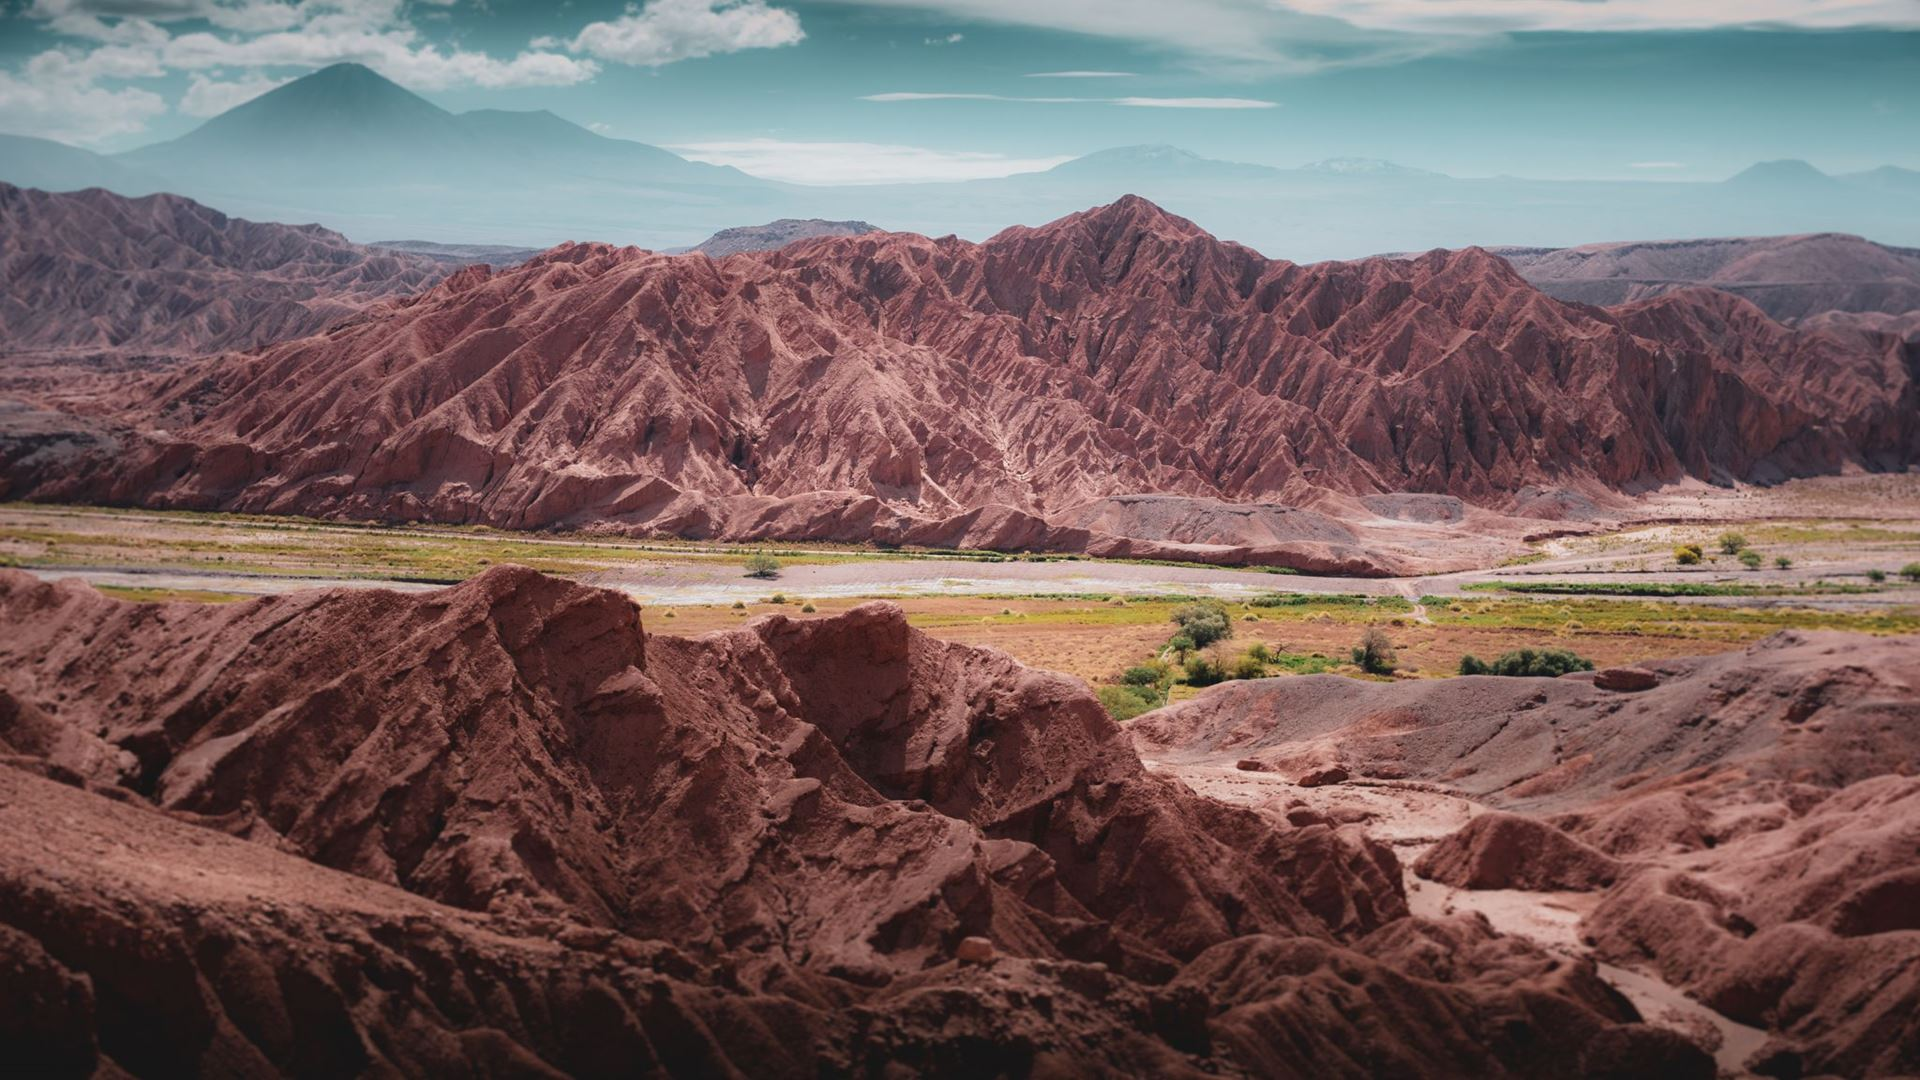 ATACAMA BIKE TOUR - CATARPE & DEVILS GORGE